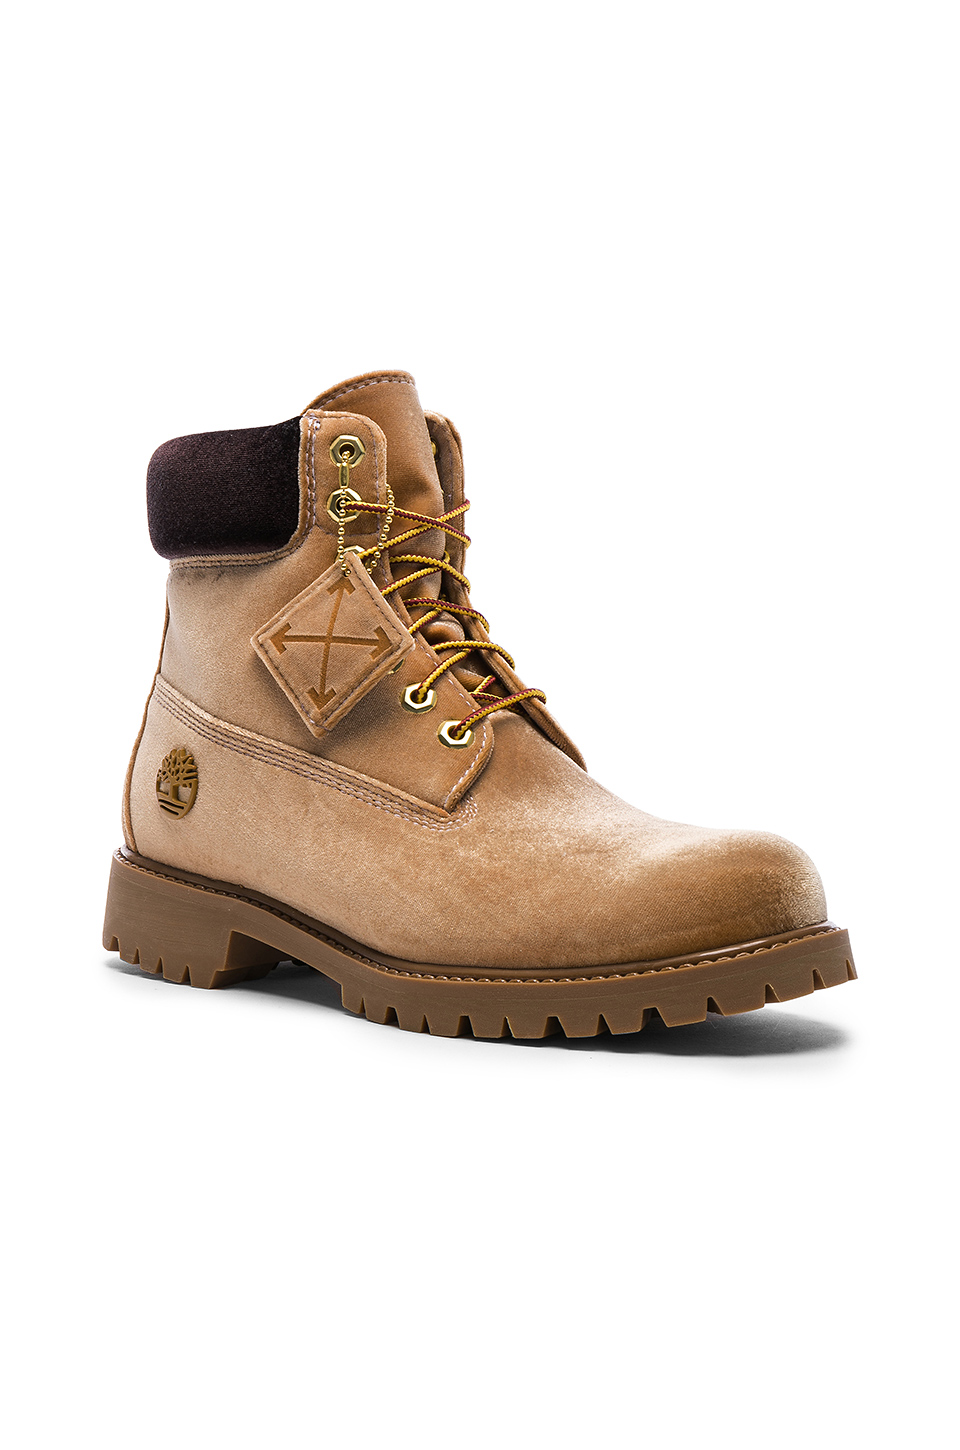 OFF-WHITE x Timberland Velvet Hiking Boots in Camel